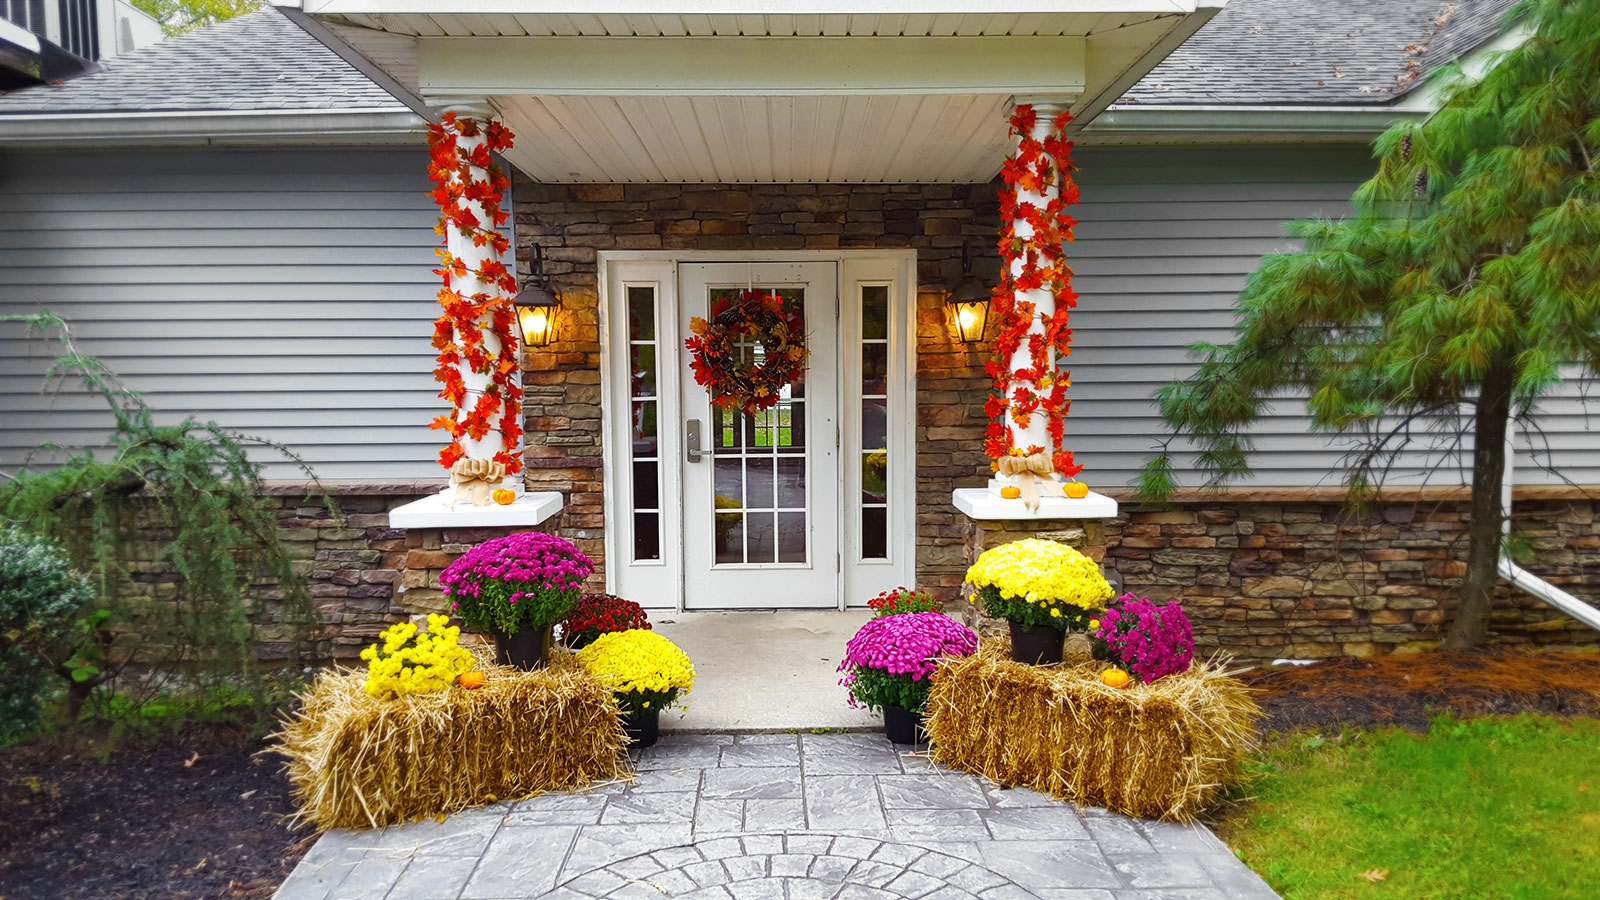 Autumn decoration at the front door of a house